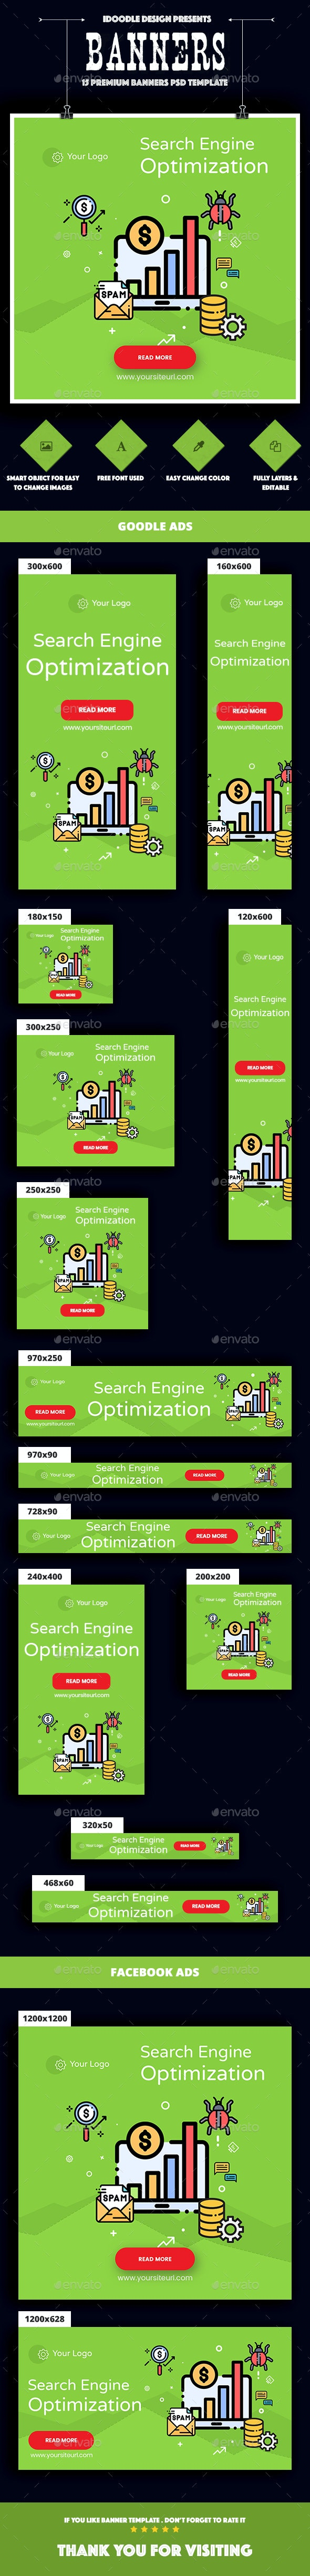 SEO Agency Banners Ad - Banners & Ads Web Elements